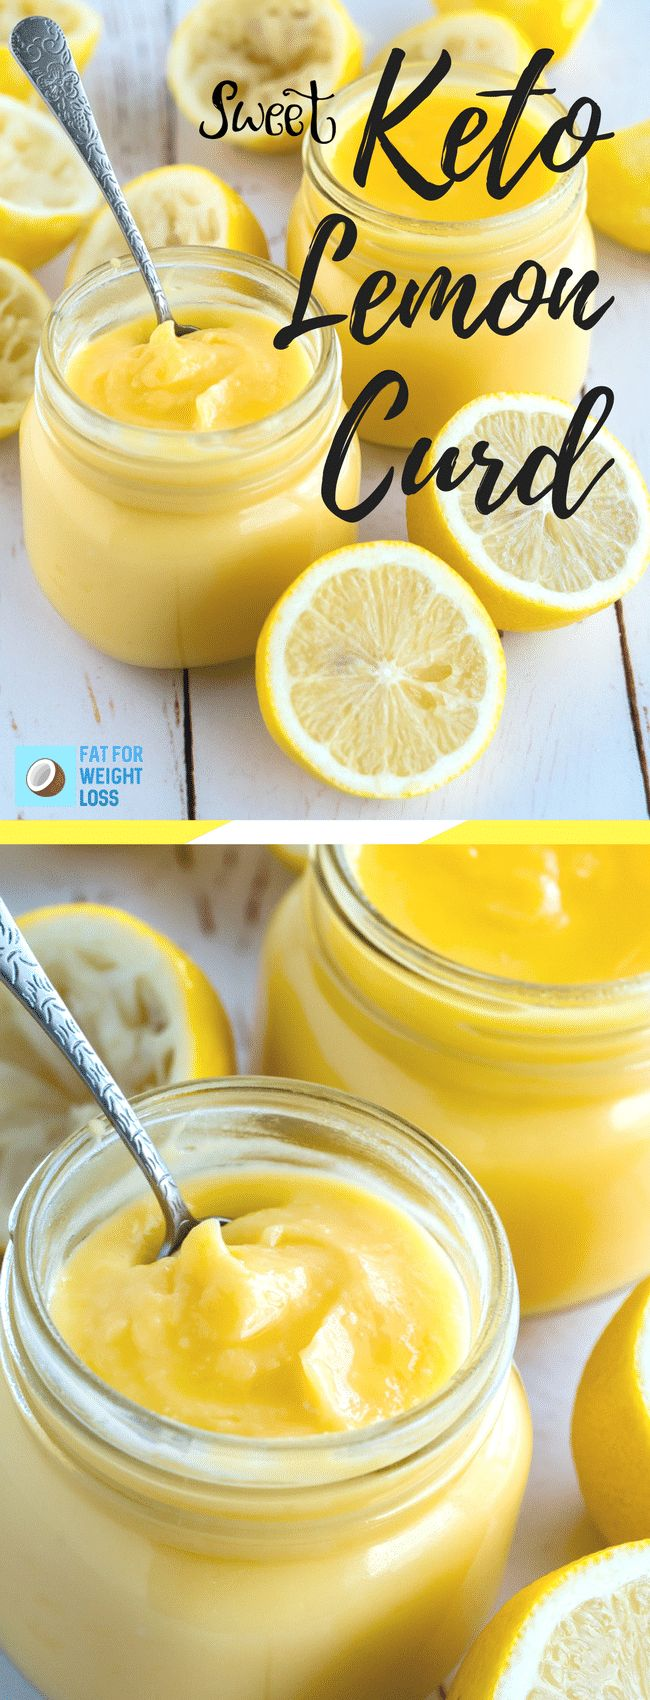 The perfect keto lemon curd is one that tastes good by itself, however, this keto lemon curd is also delicious as a spread for keto toast, keto scones or to sandwich together with a keto sponge cake. It's a perfectgift for a friend (even if they are not keto).